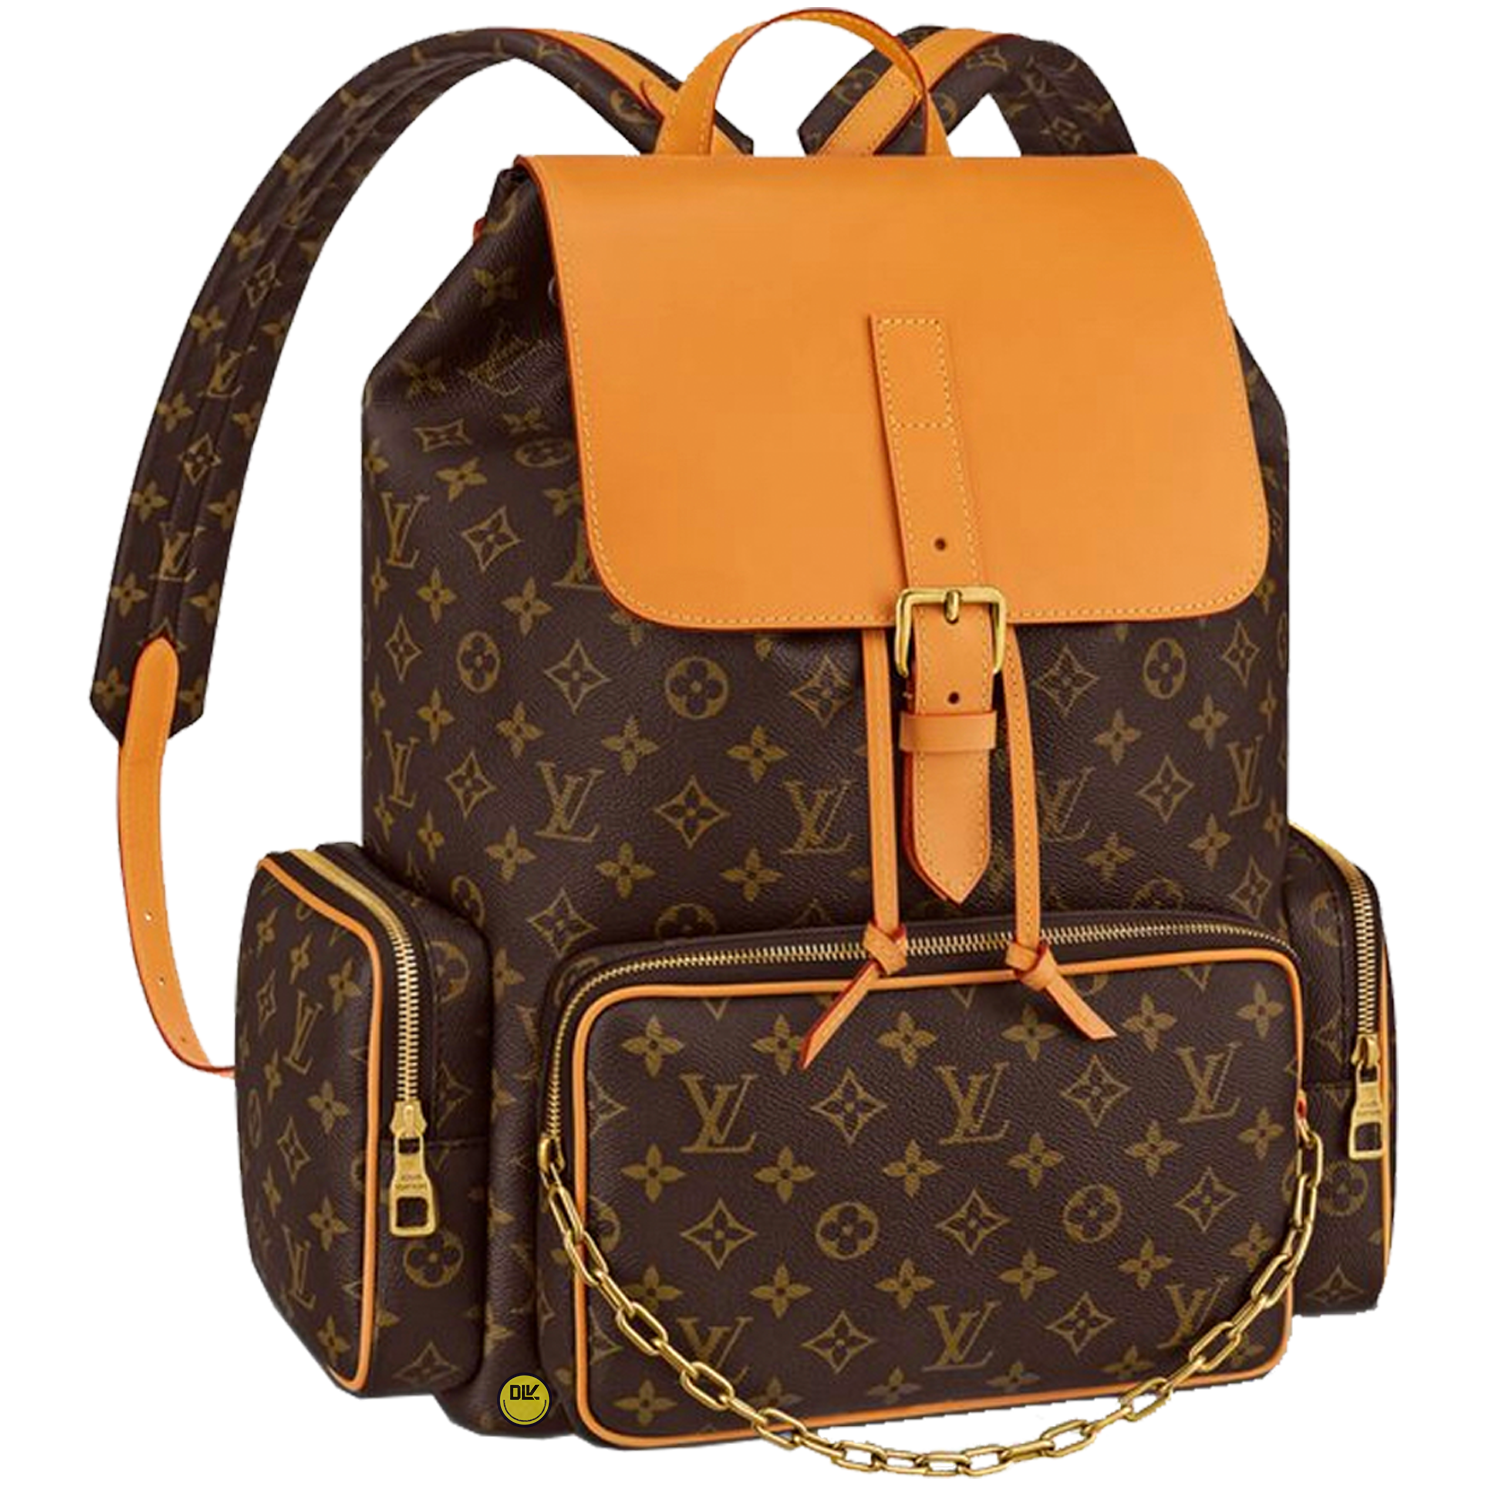 TRIO BACKPACK - €2600 $3150M44658MONOGRAM LEGACY